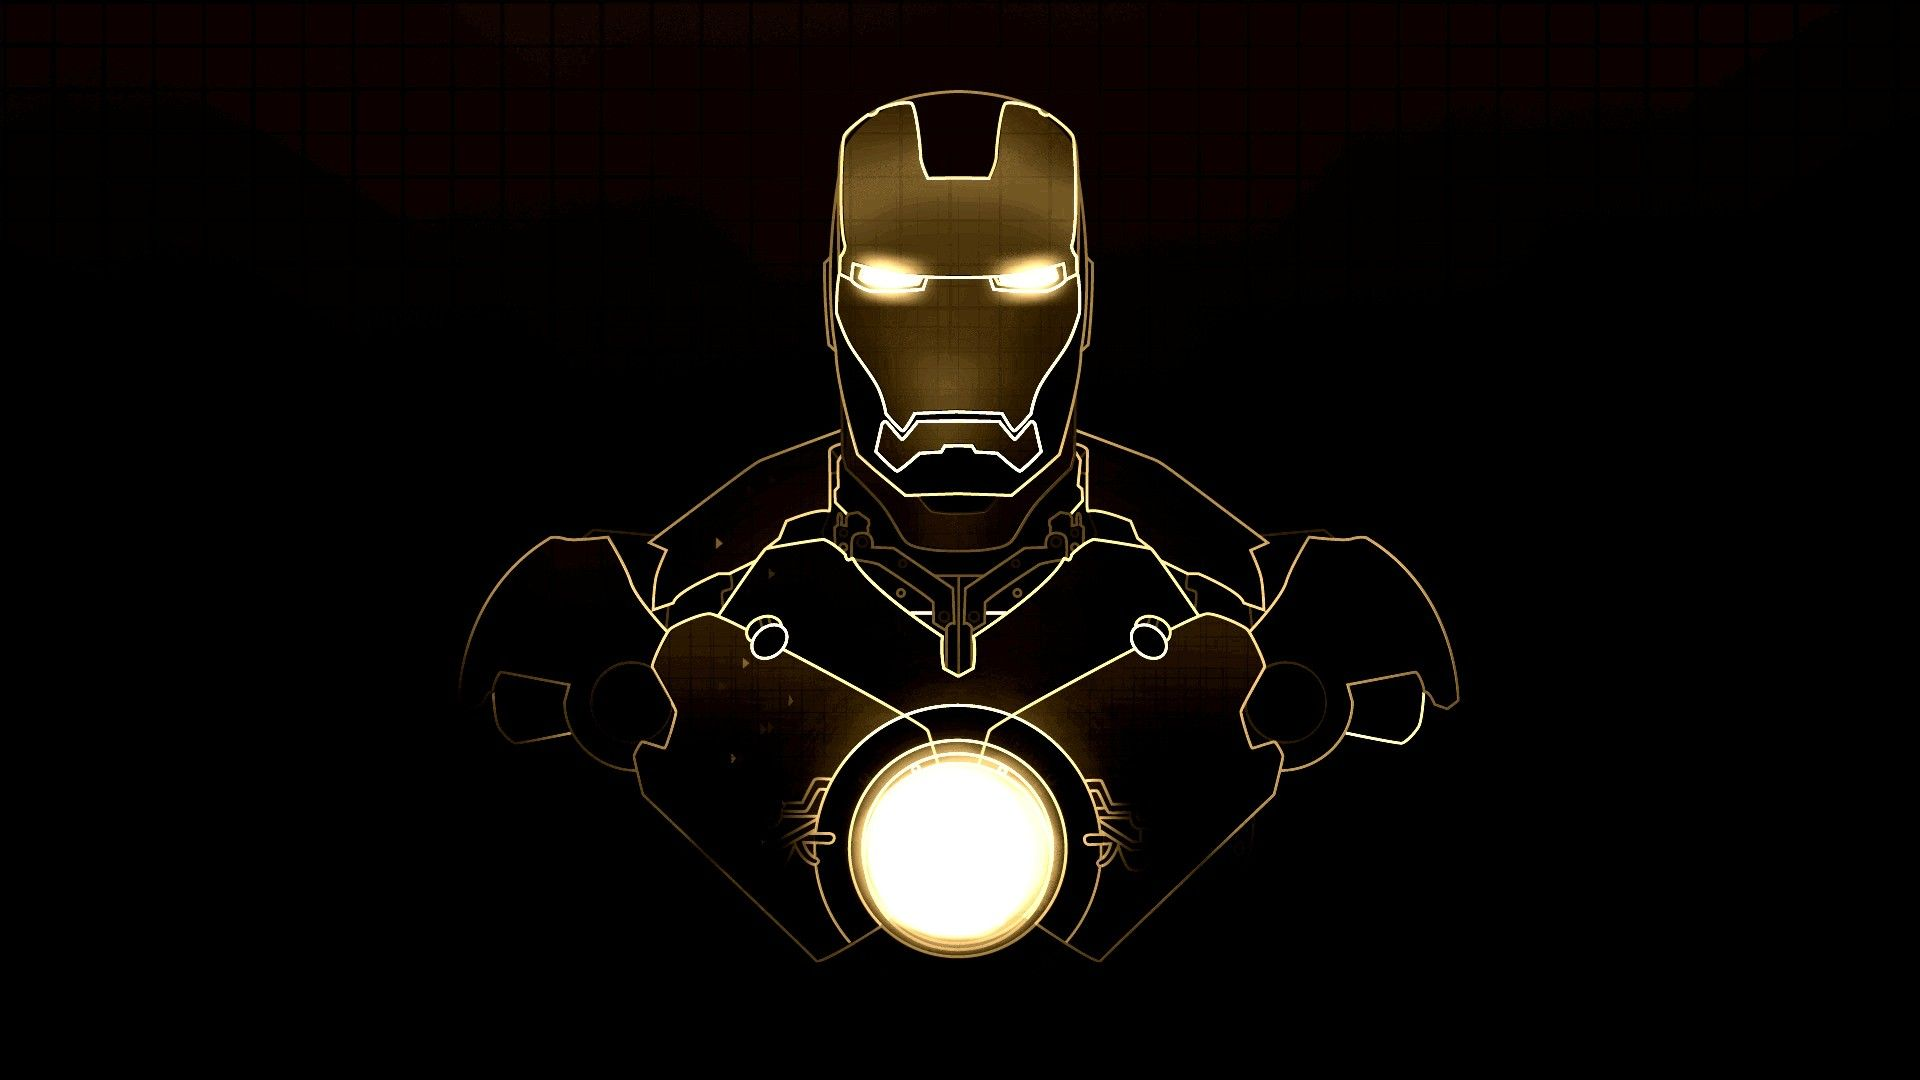 1920x1080 Iron Man HD Wallpapers 1080p Group (92+)